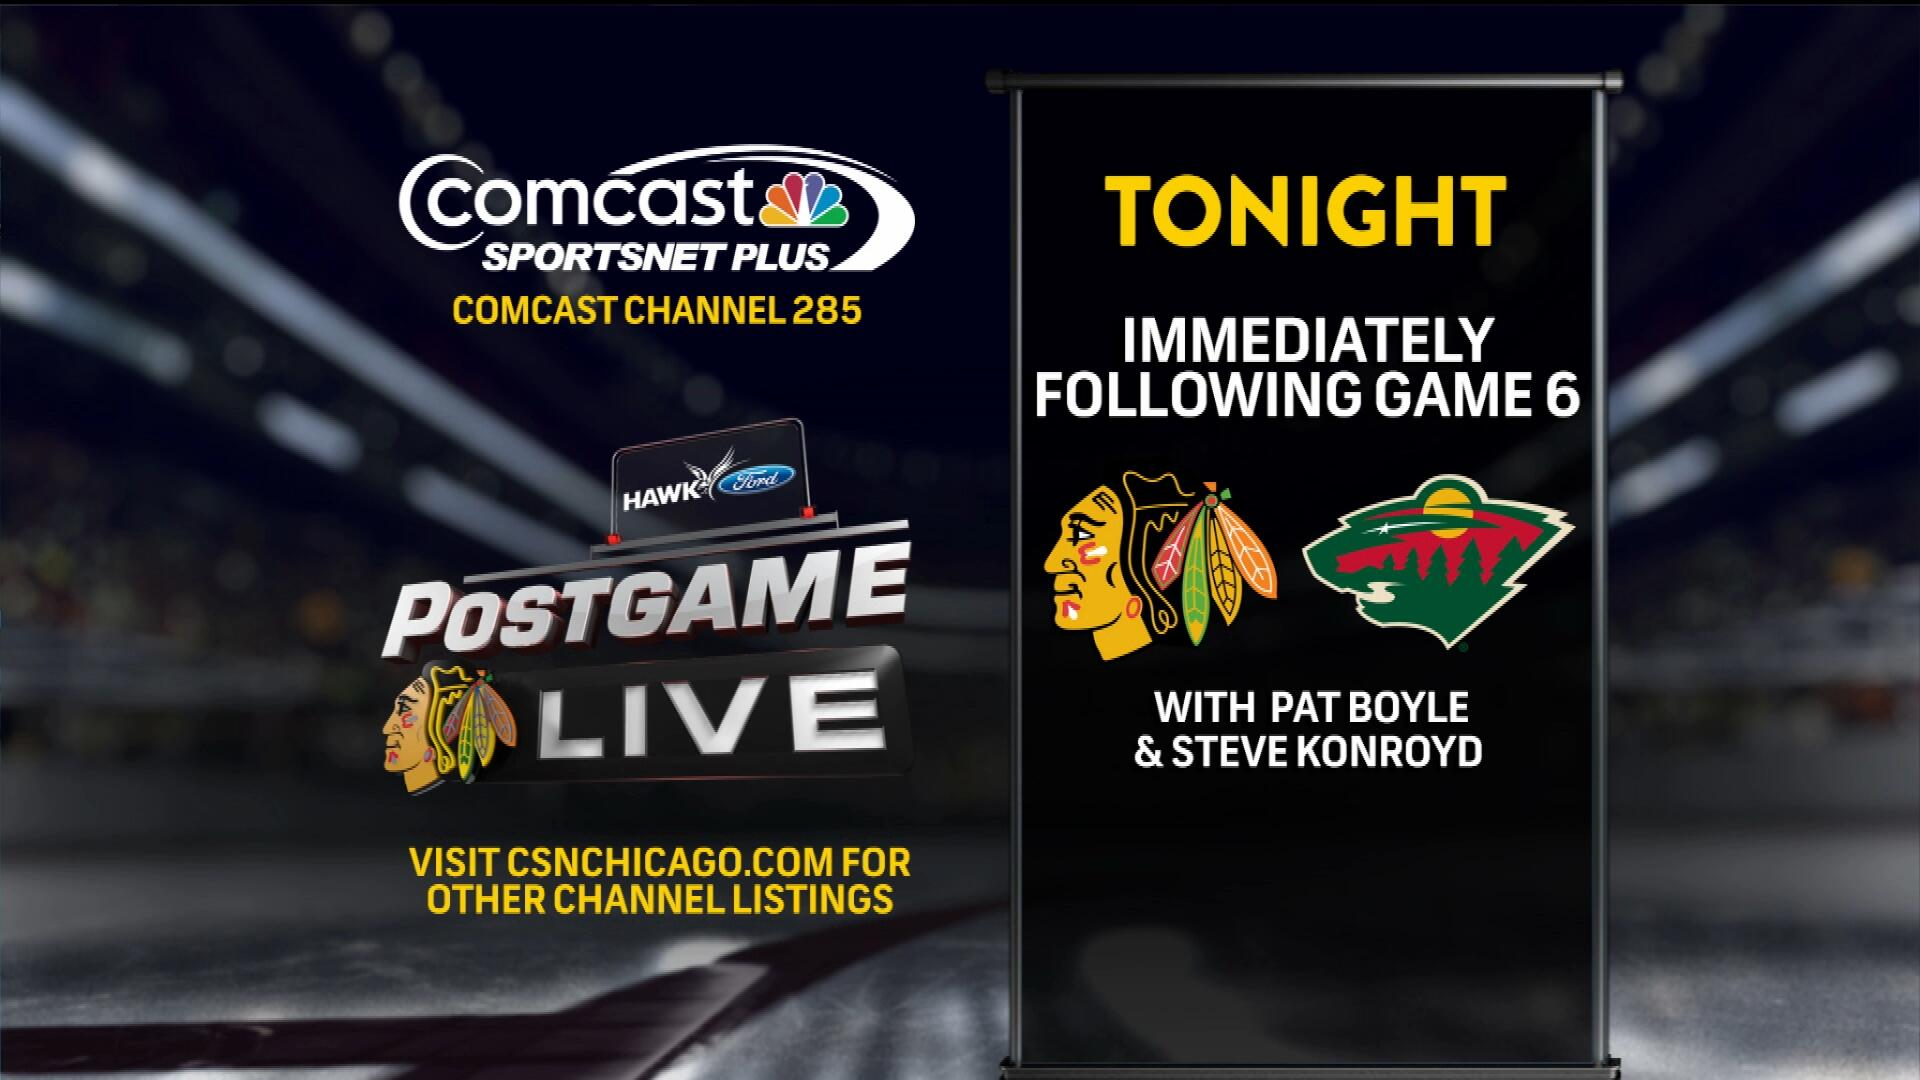 NBC Sports Chicago on Twitter: